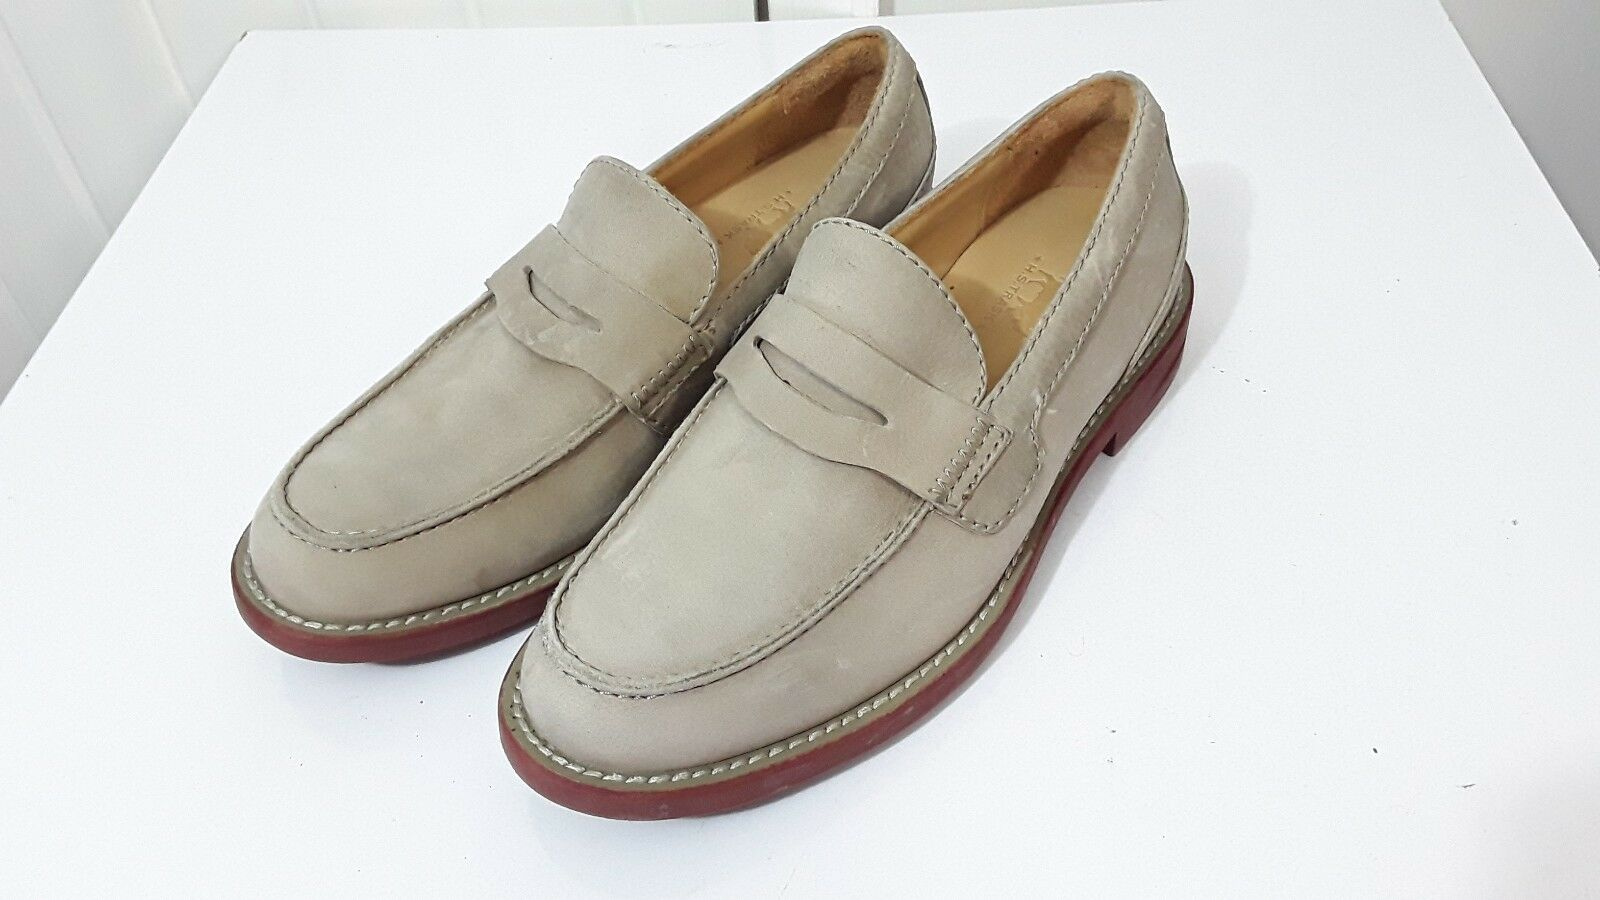 H.S TRASK MENS SZ 8.5  PENNY LOAFERS NEUTRAL TAUPE SUEDE LEATHER SHOES